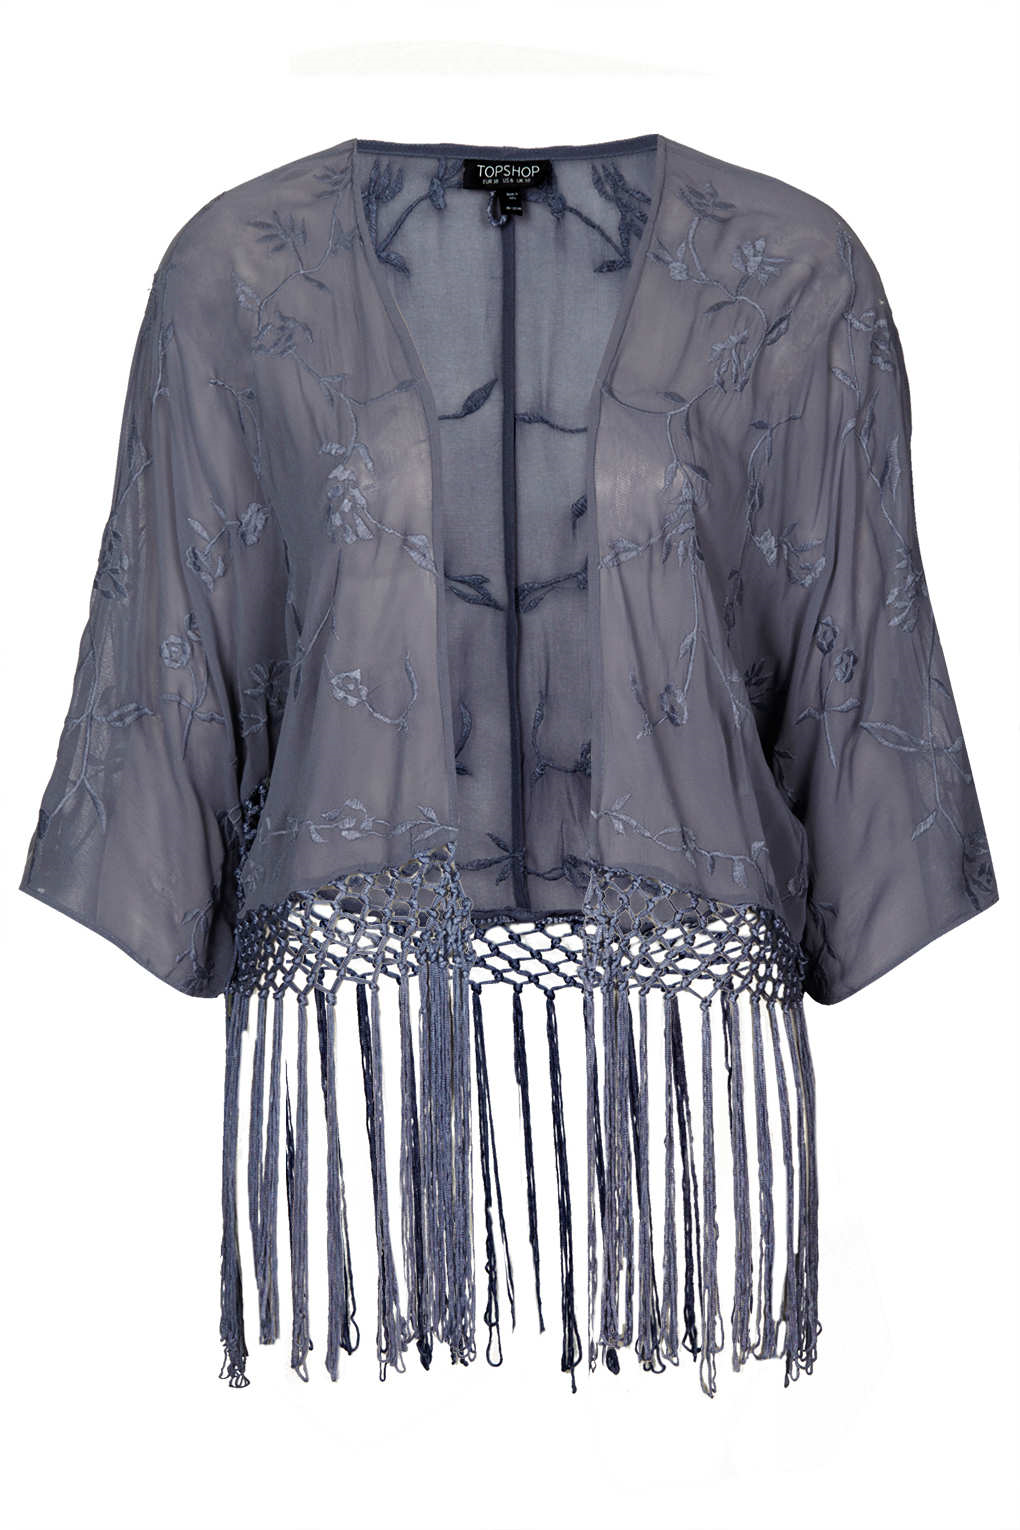 http://www.topshop.com/en/tsuk/product/clothing-427/jackets-coats-2390889/kimonos-2897914/fringe-kimono-2832672?refinements=category~[1713998|208526]&bi=1&ps=20